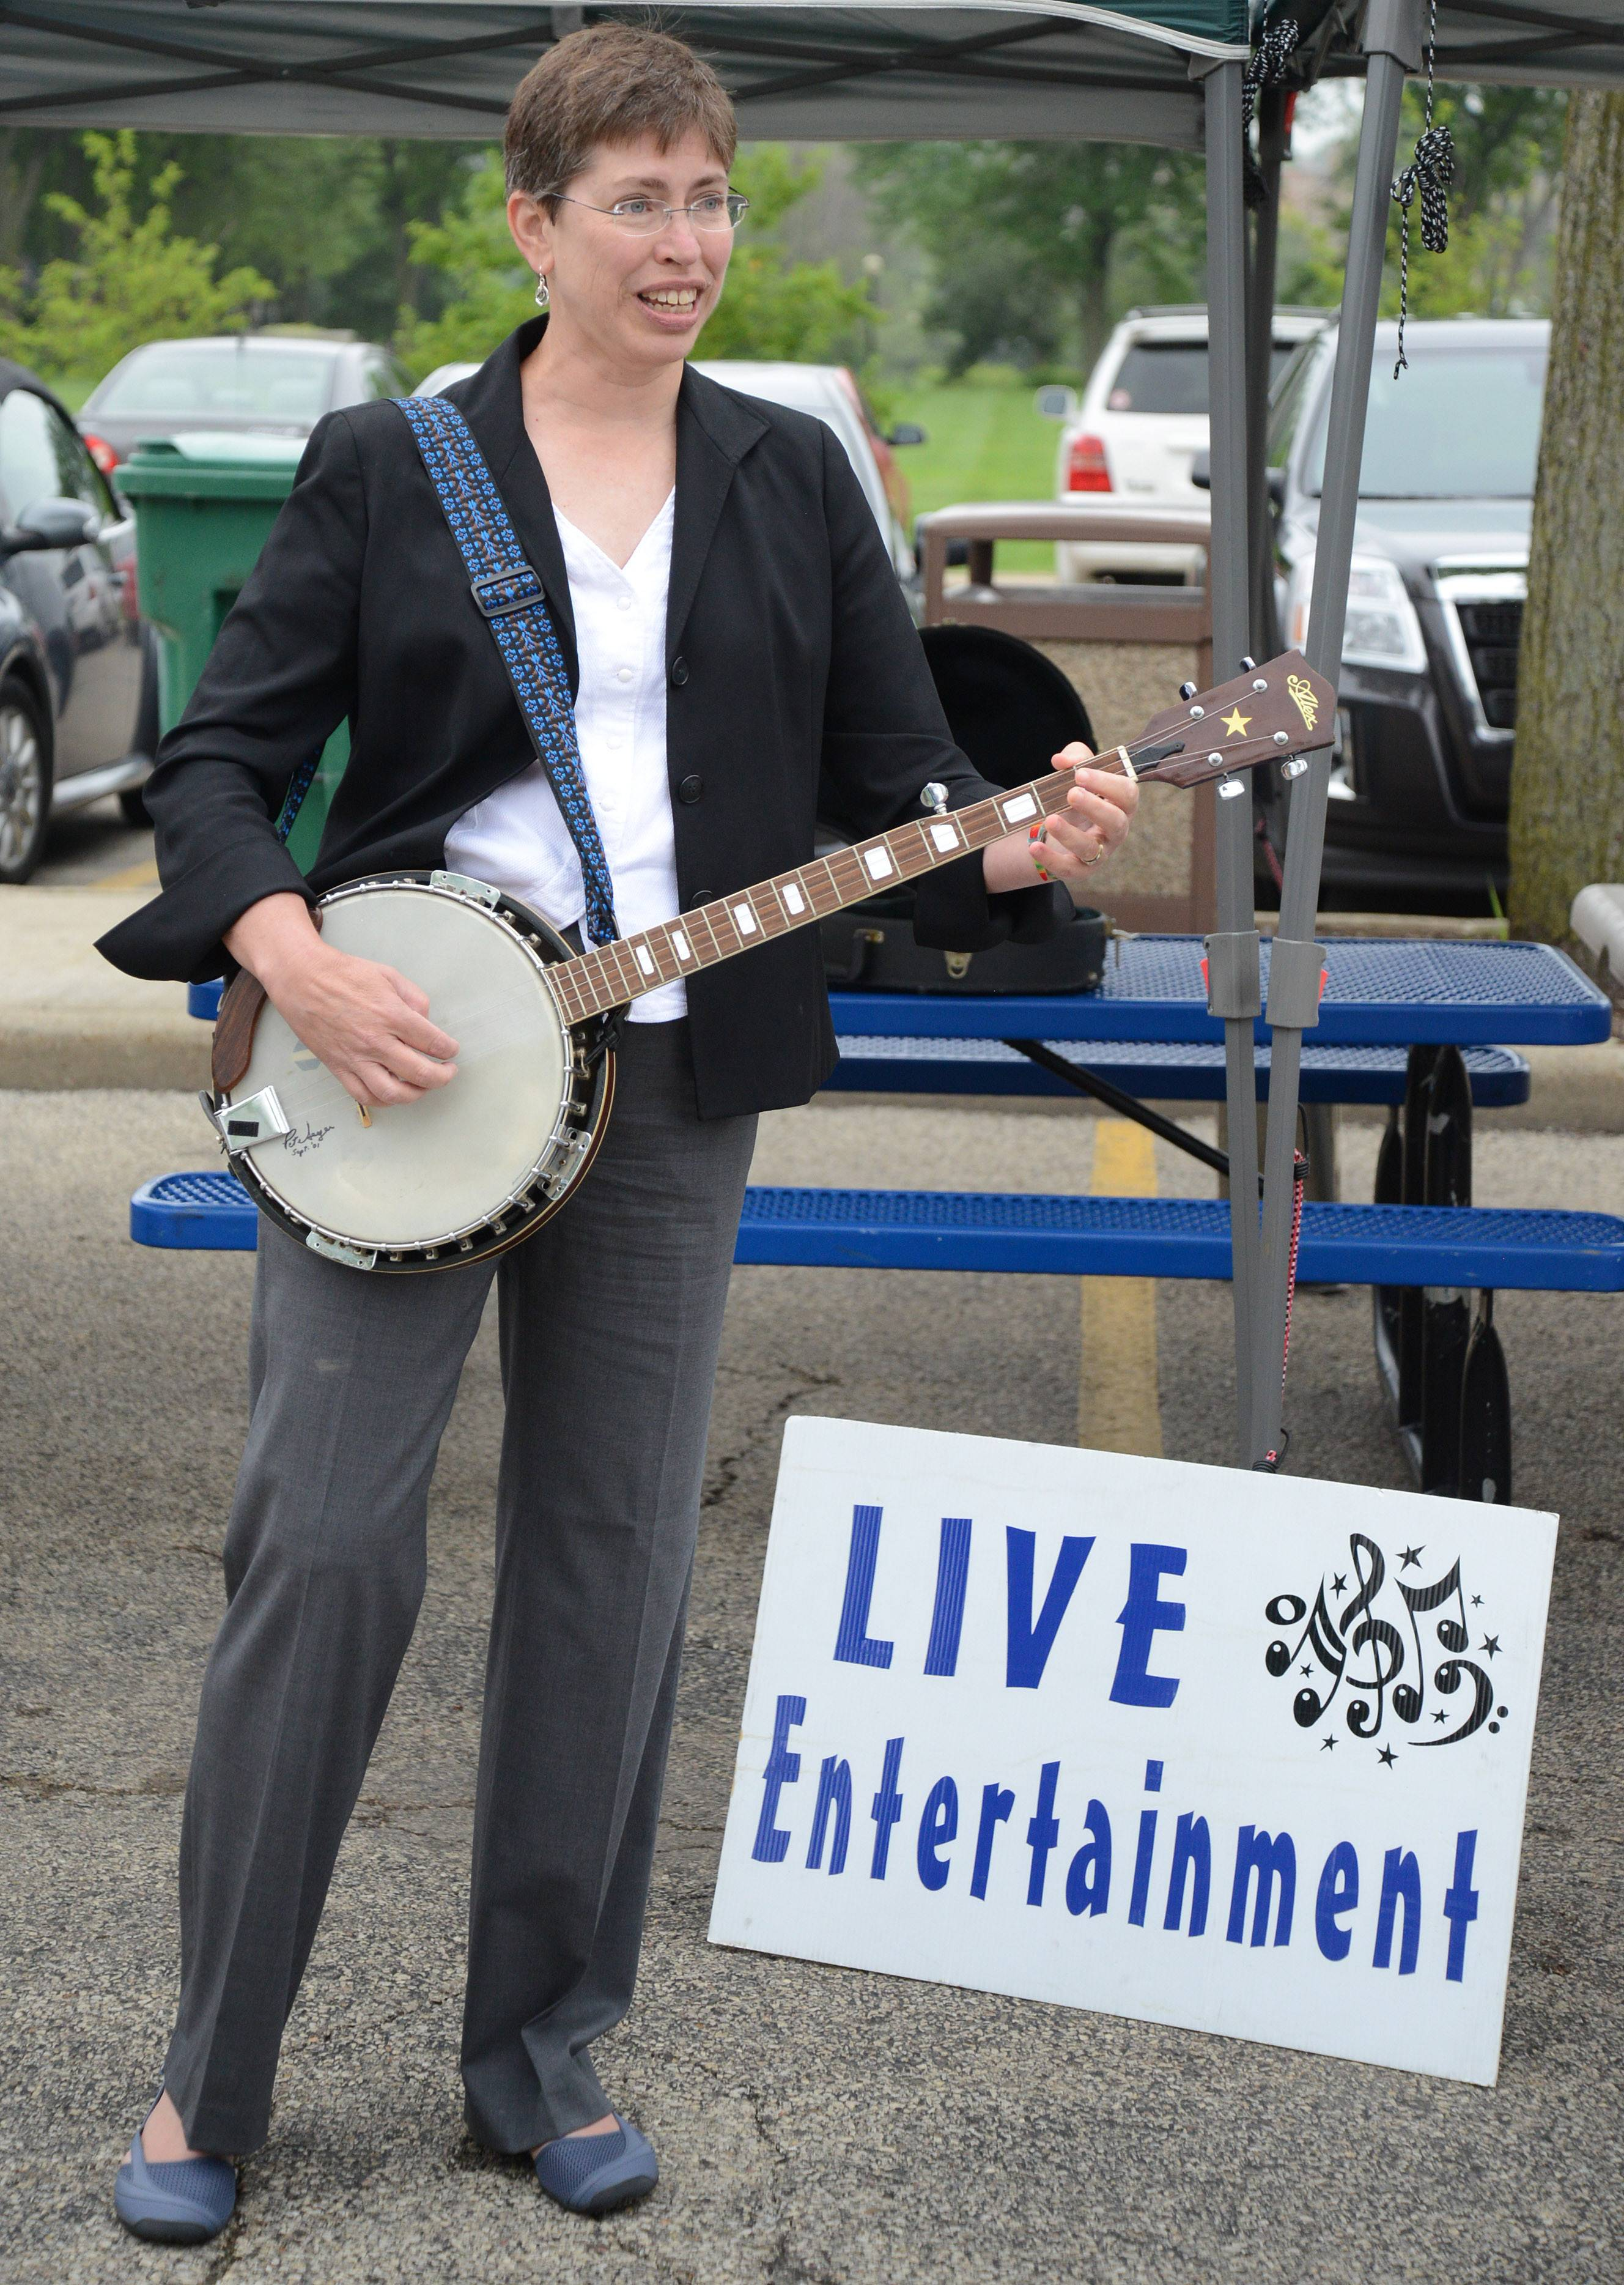 Lt. Gov. Sheila Simon gives an impromptu banjo concert at the Downtown Elgin Harvest Market Thursday. Simon was there advocating for locally grown food and urging more markets to accept Link cards.